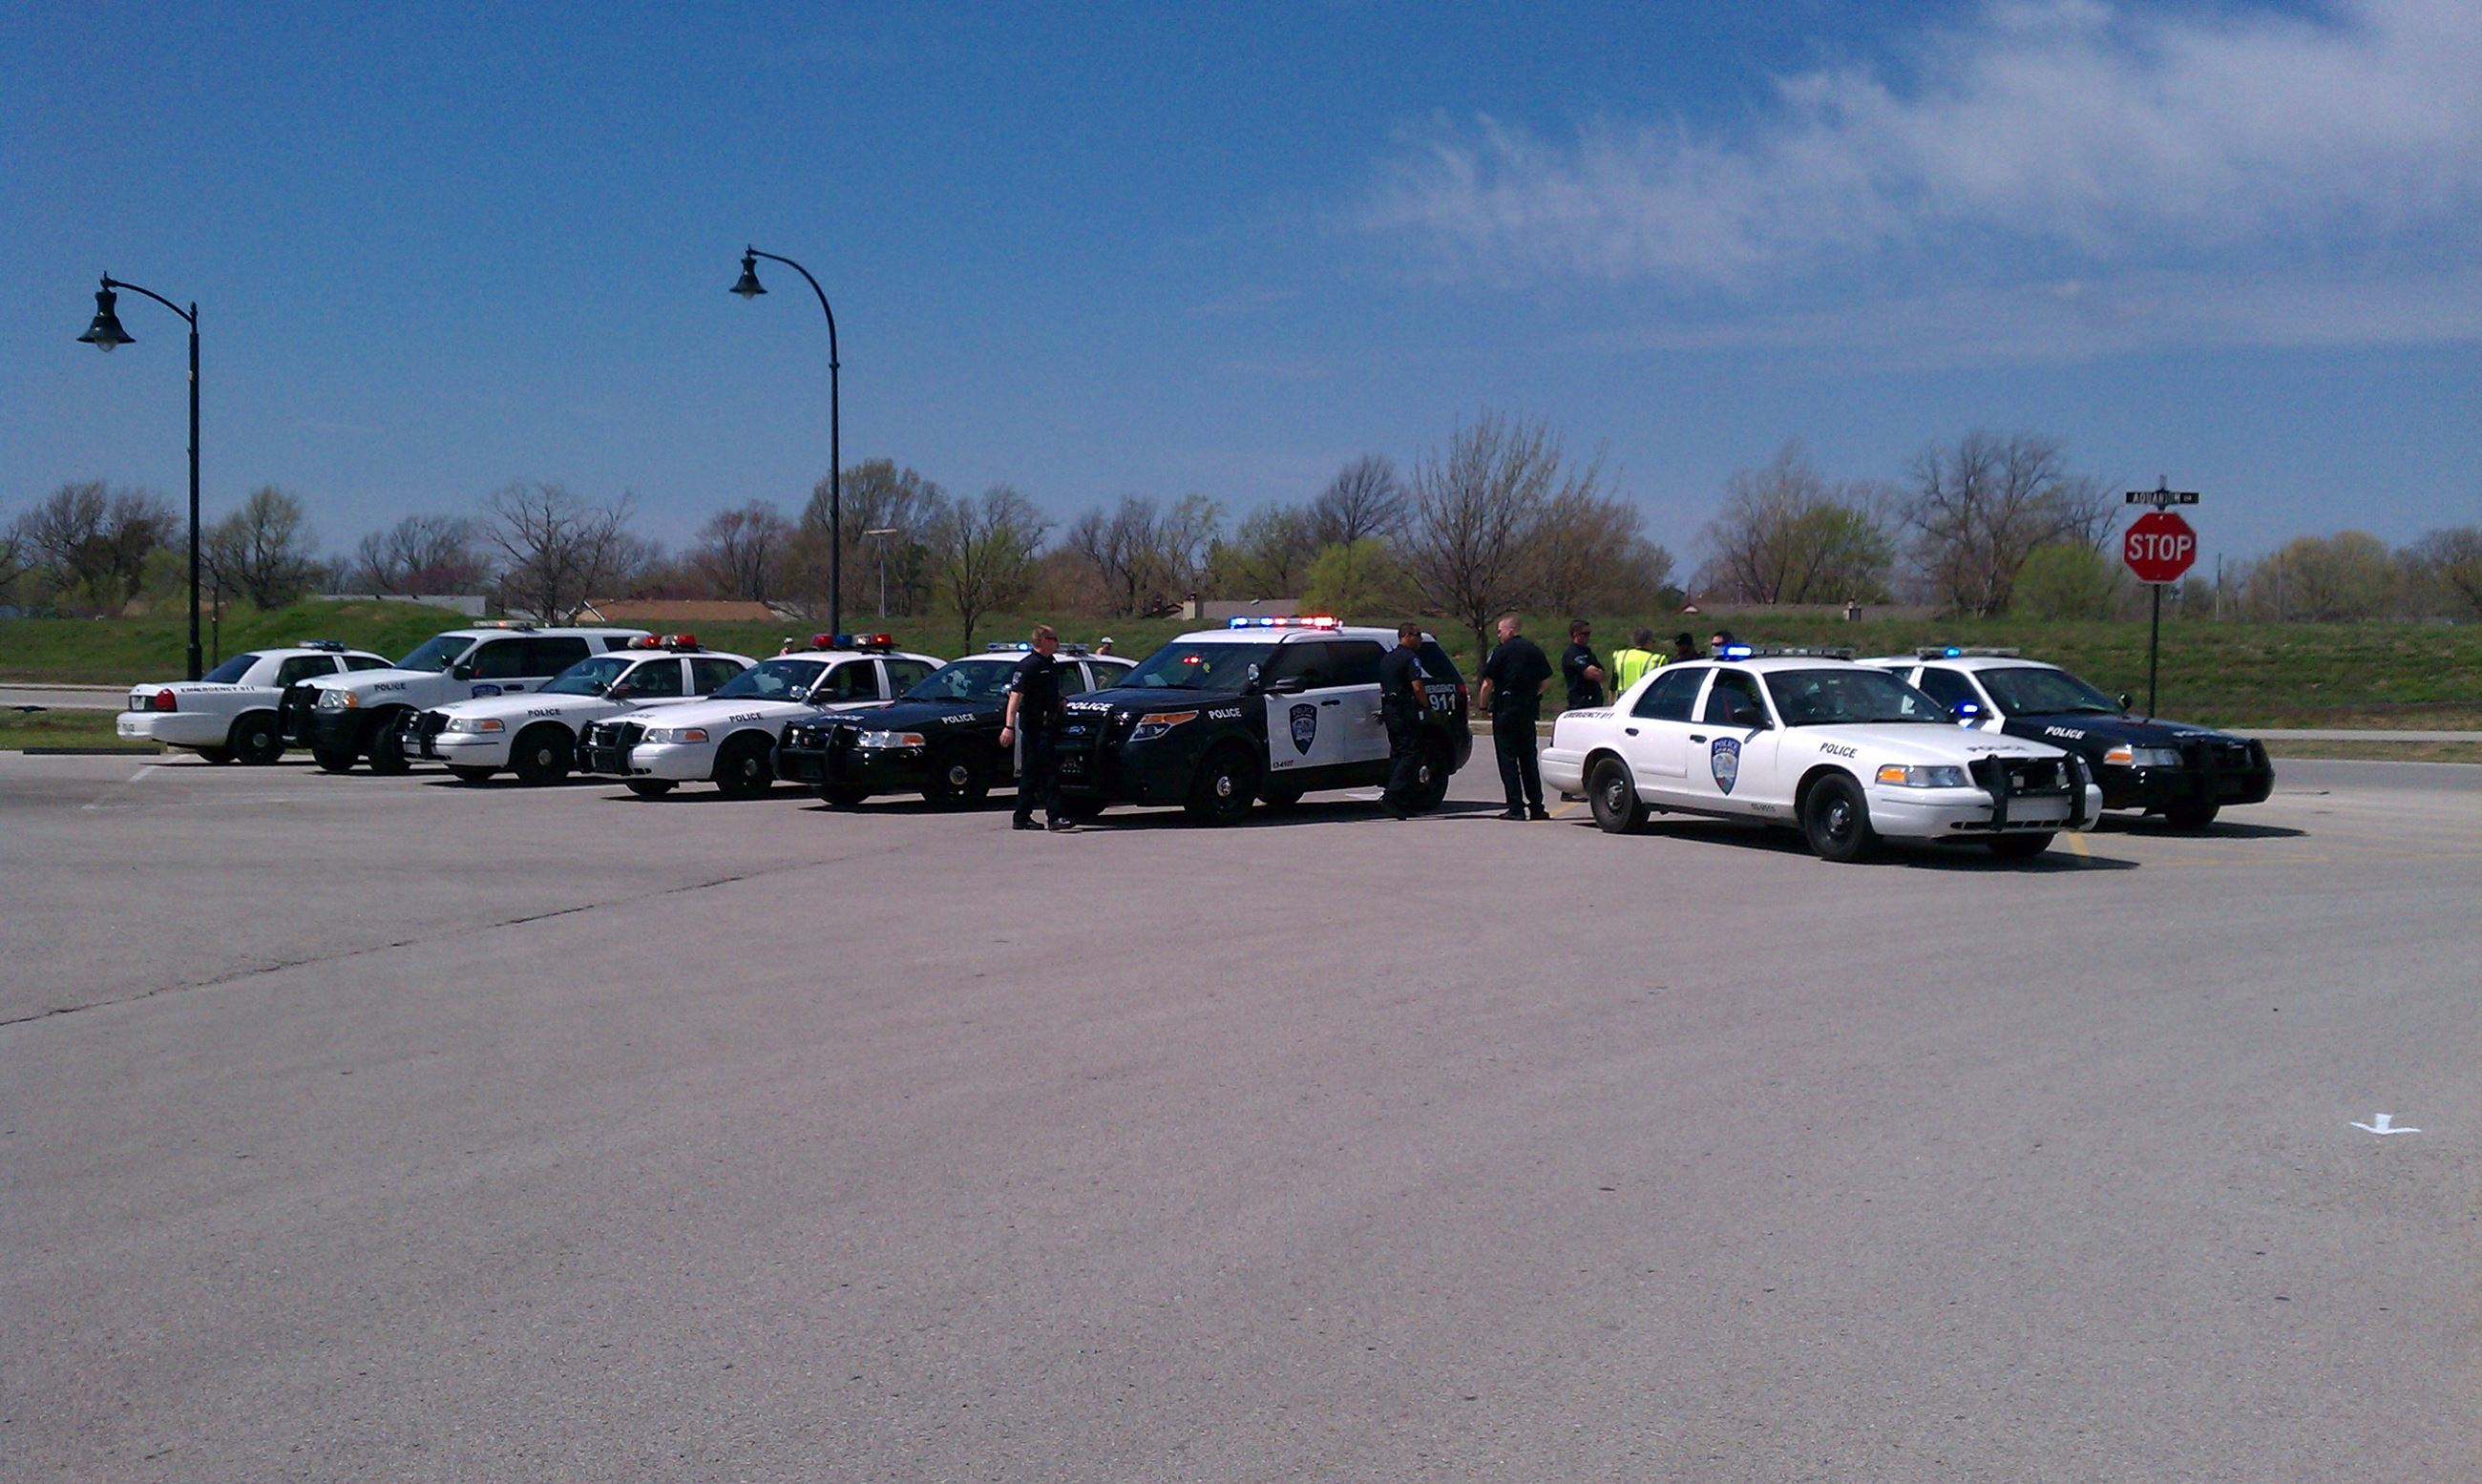 Jenks Police Cruisers Parked in a Row